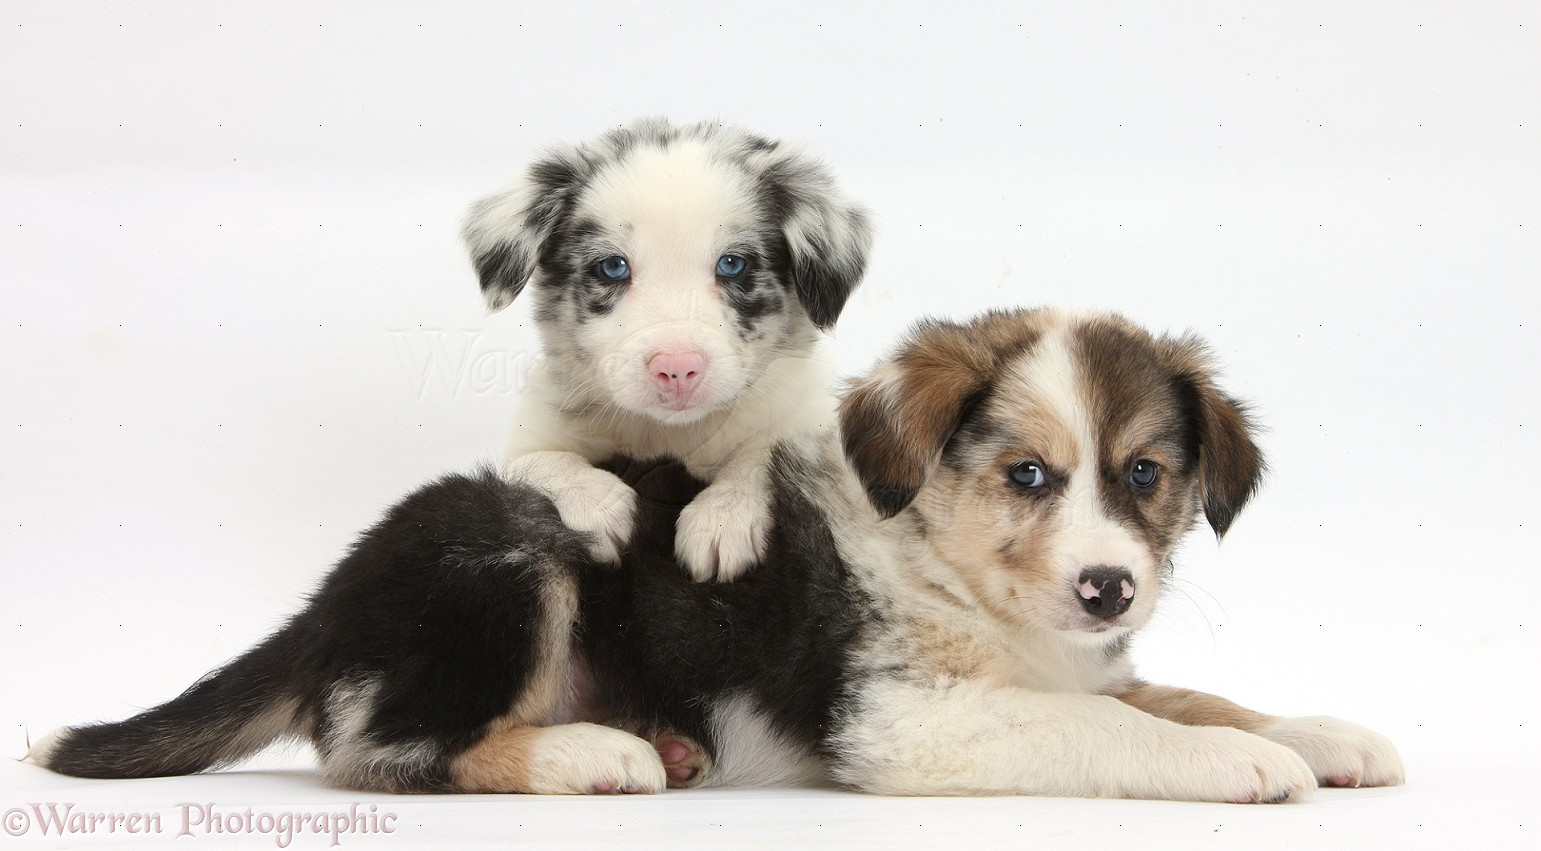 Dogs Tricolour And Merle Border Collie Puppies 6 Weeks Old Photo Wp33832